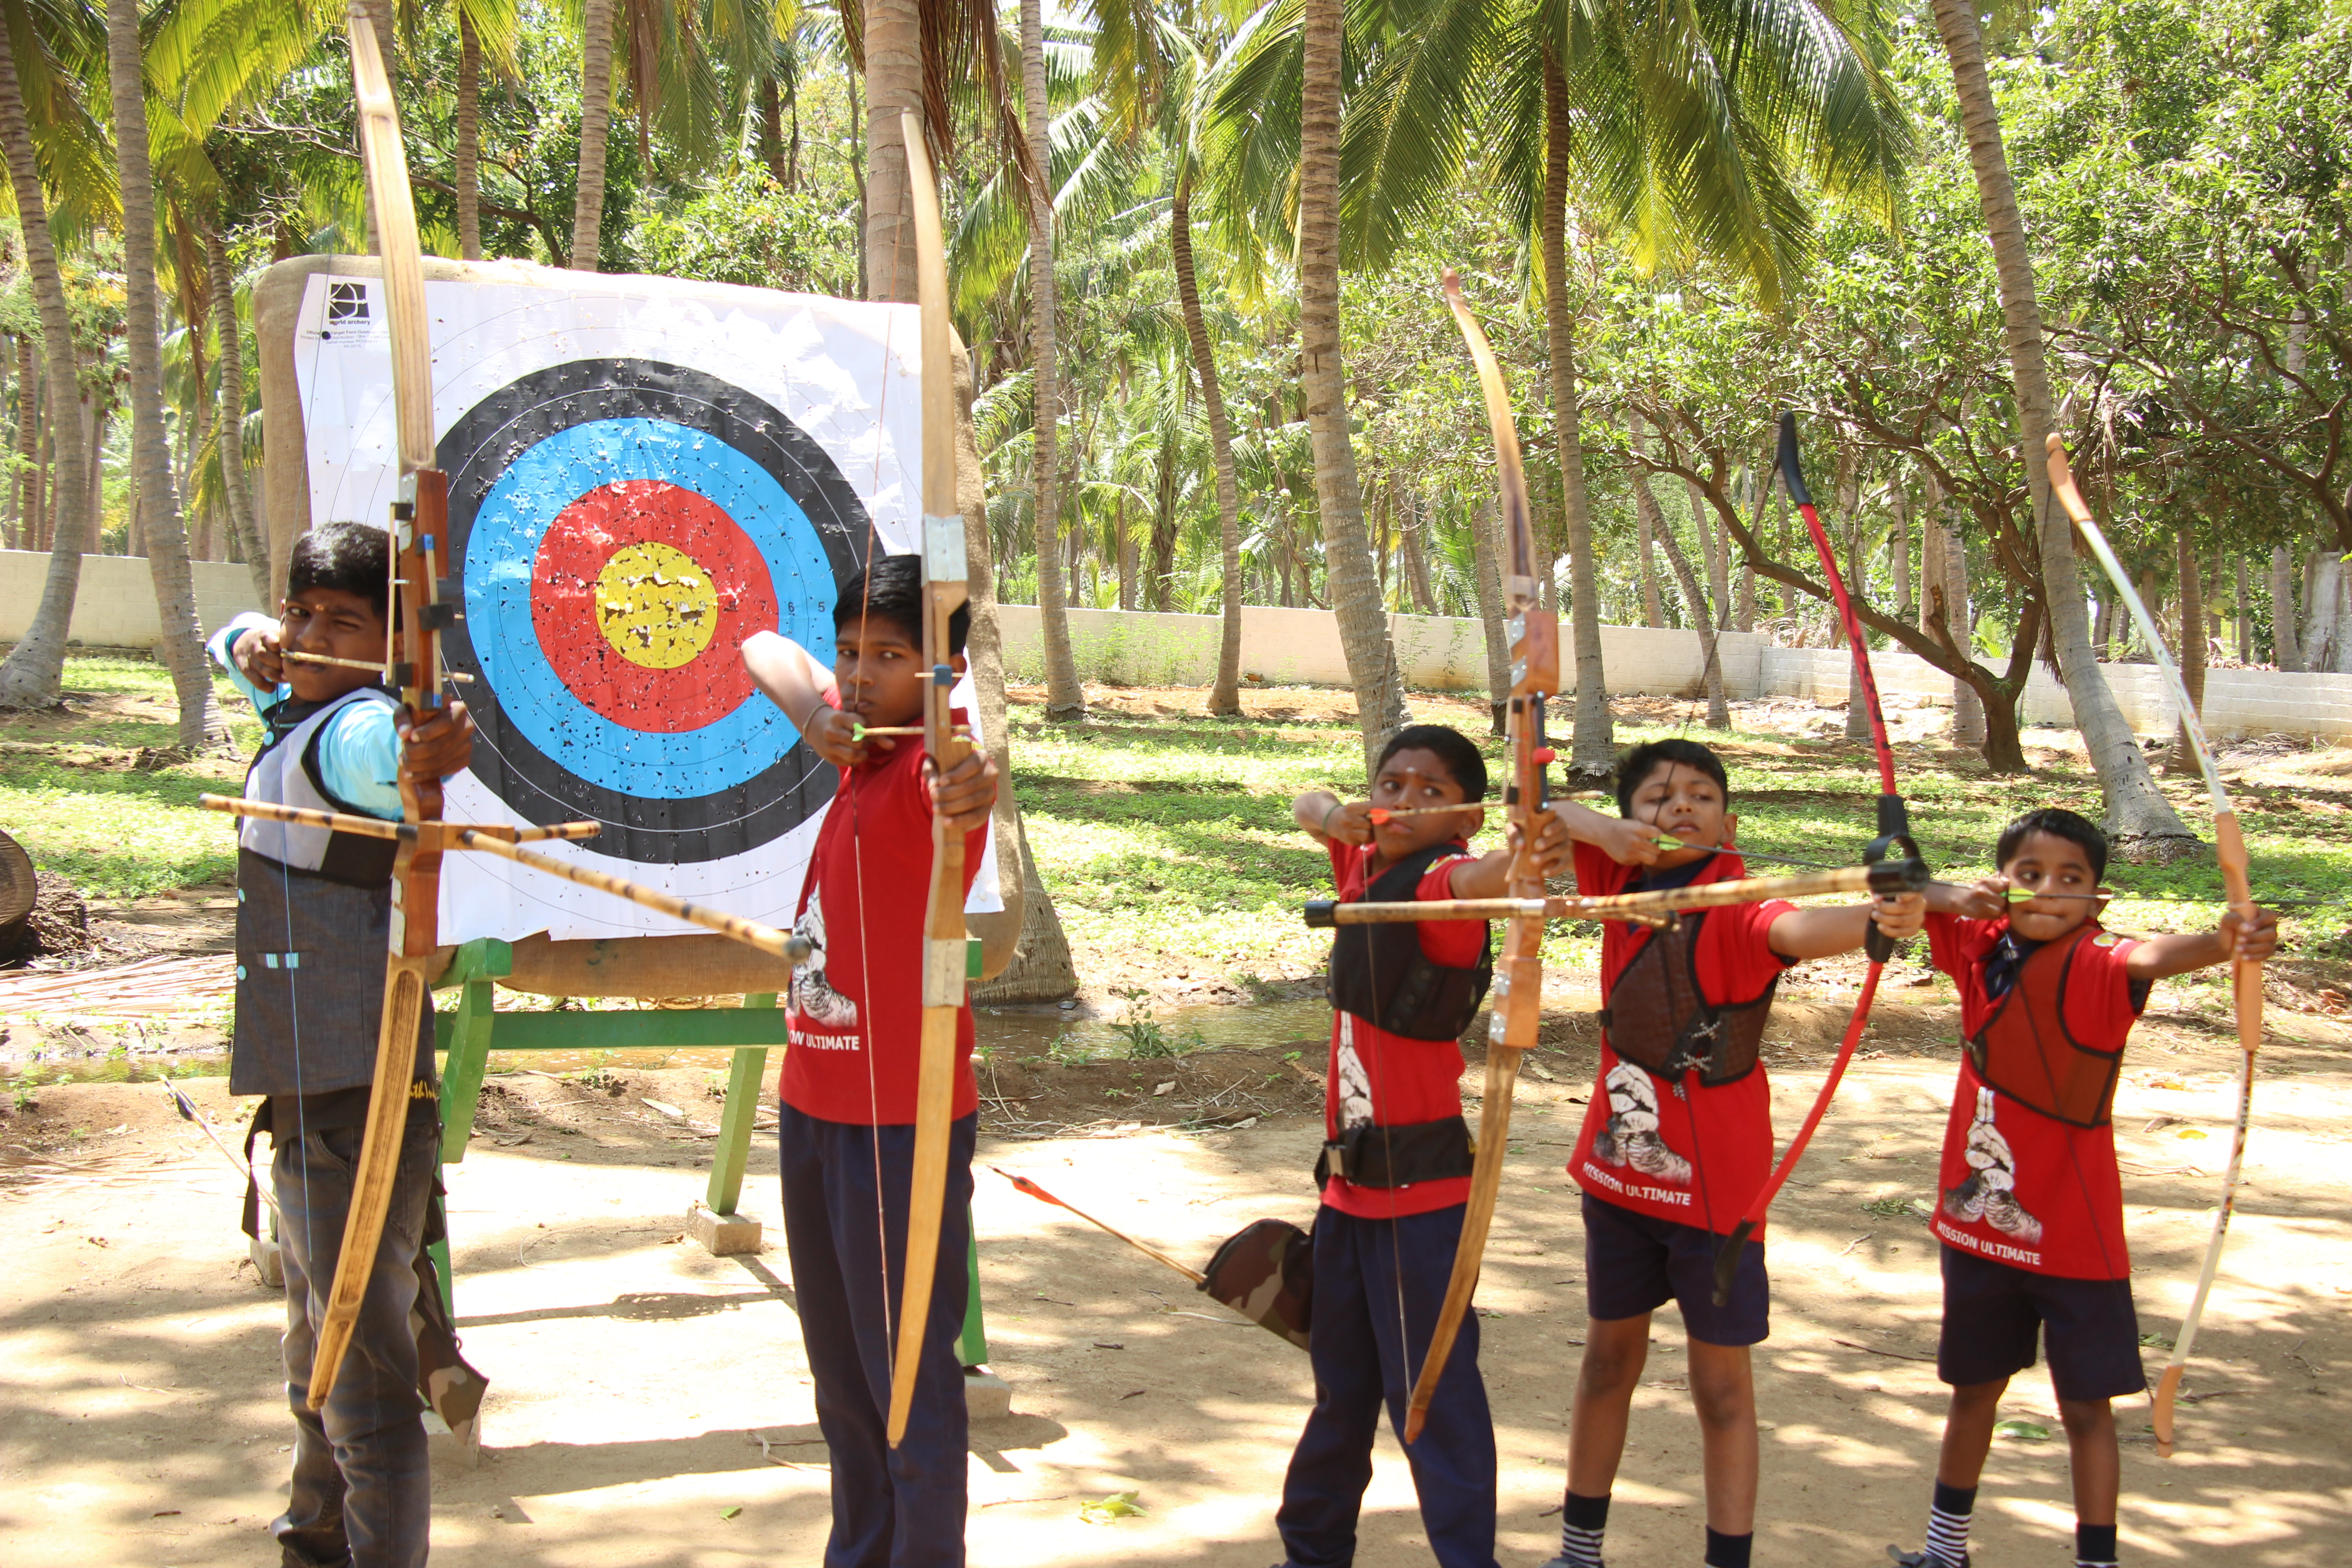 Performing Archery